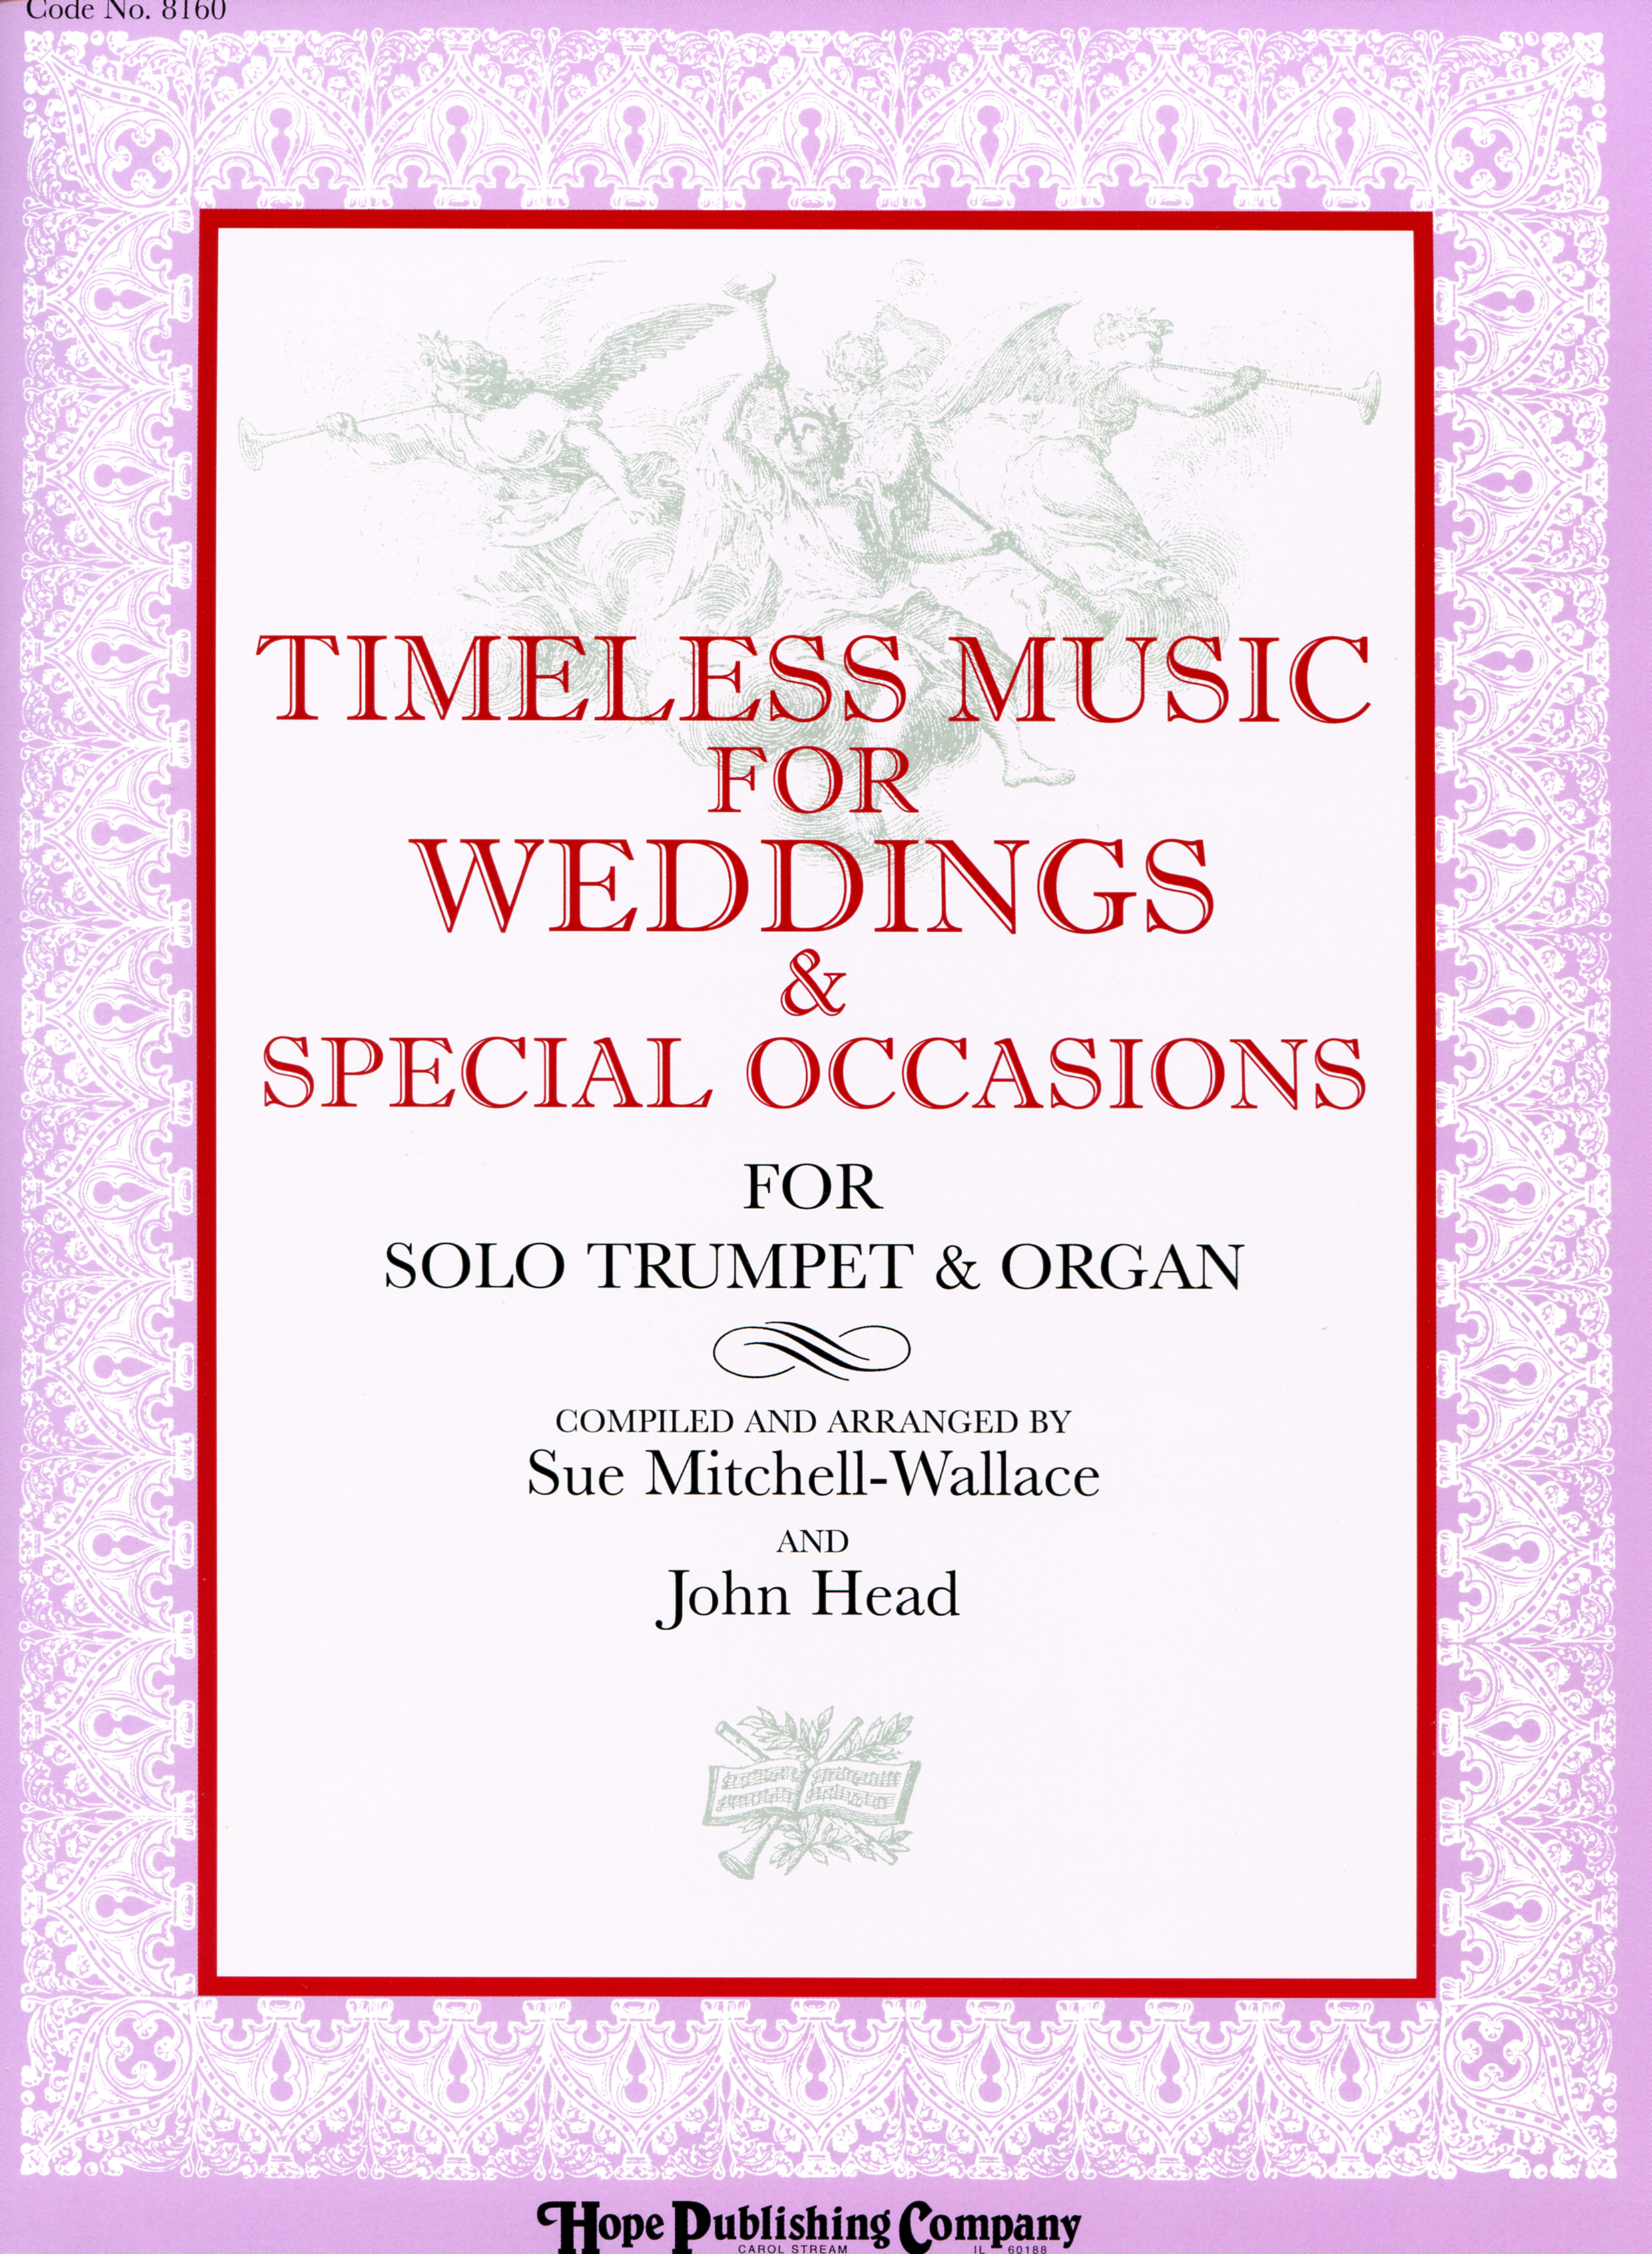 Timeless Music for Weddings and Special Occasions - Organ and Trumpet Cover Image